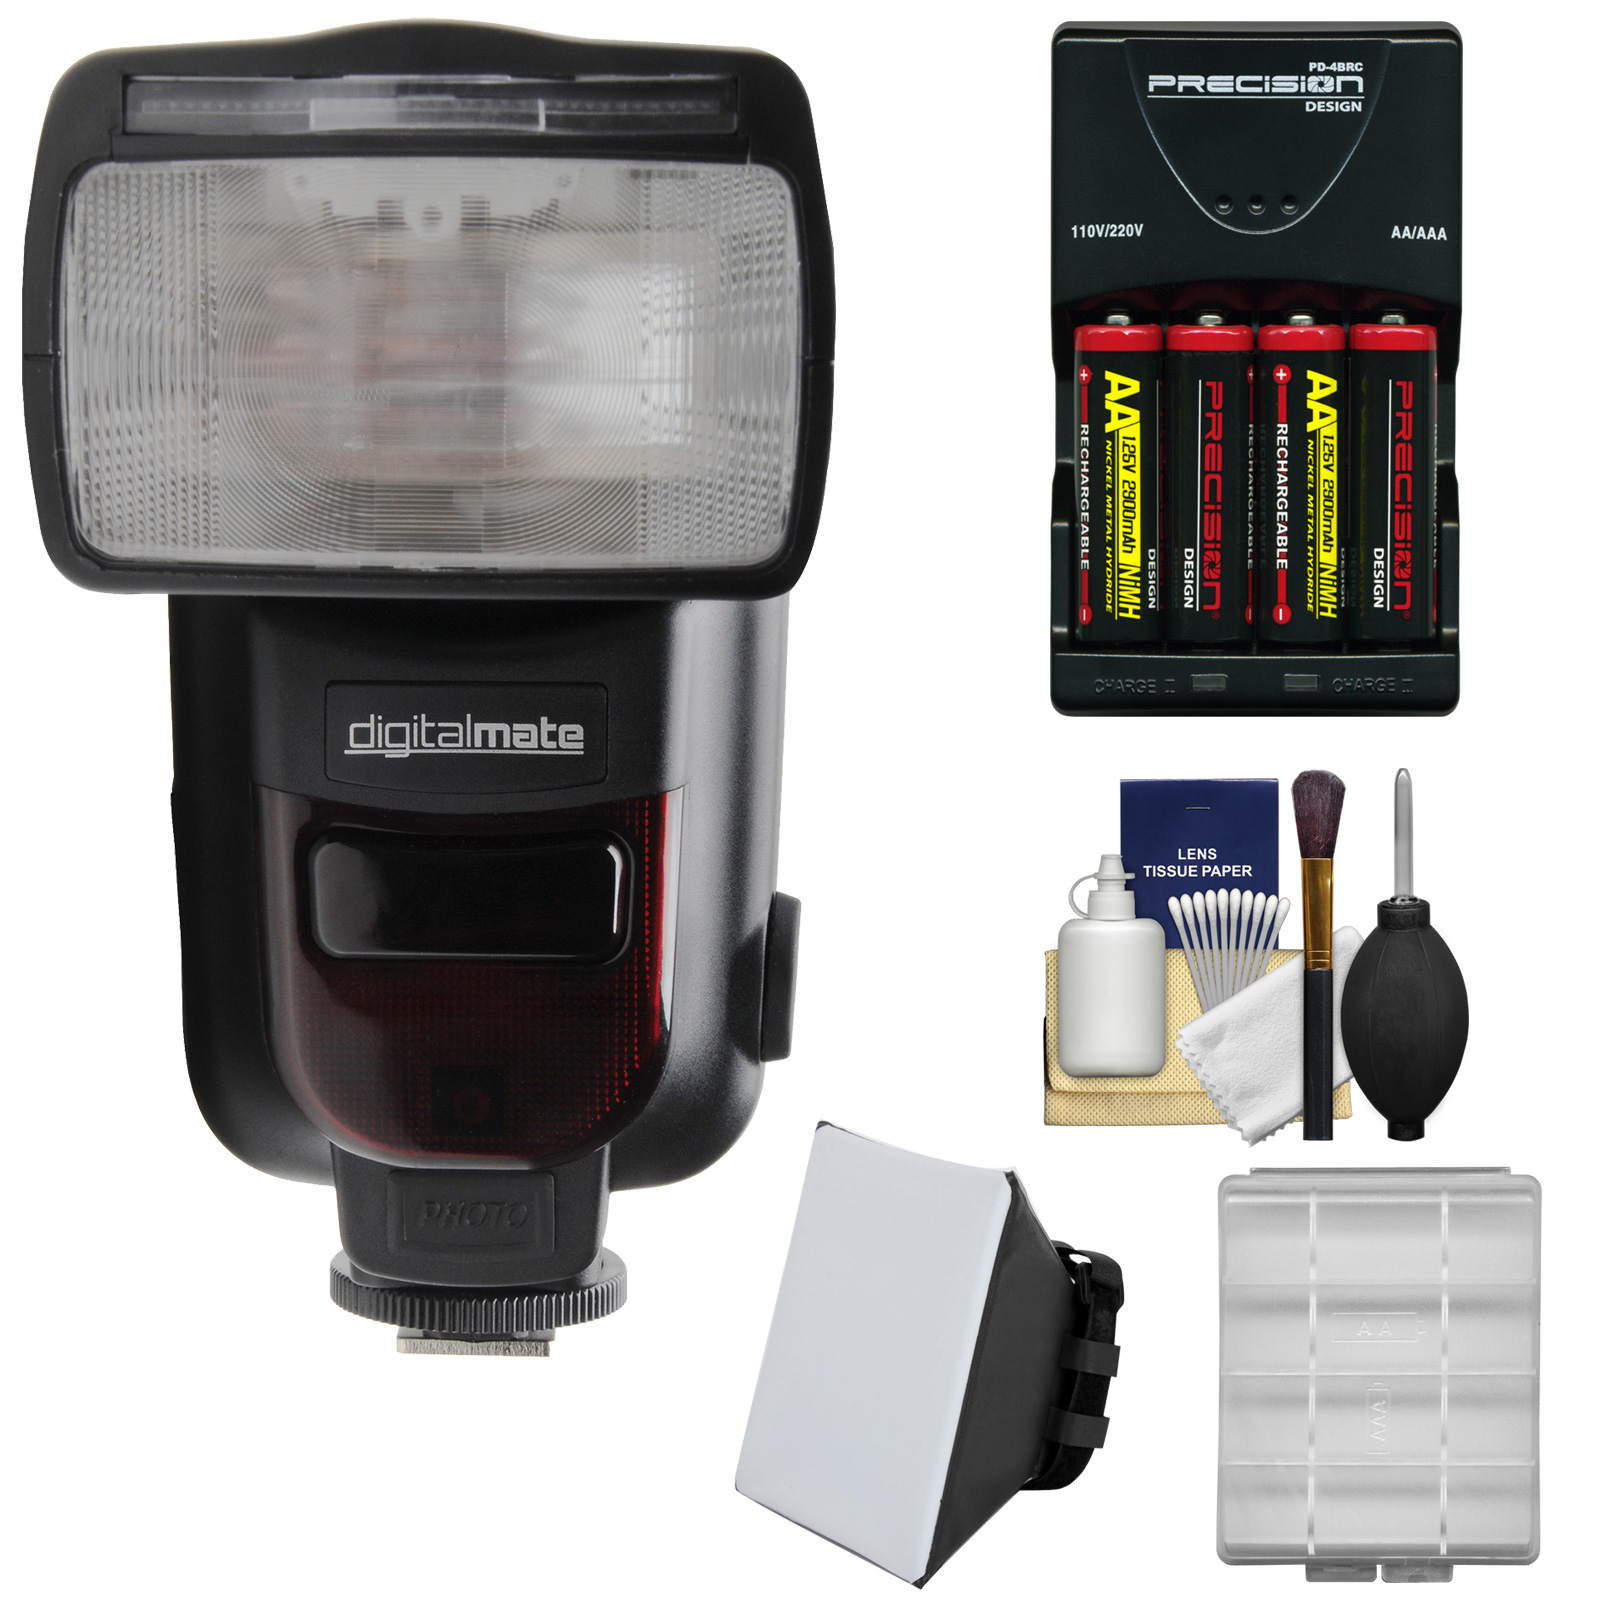 Digitalmate 780 Power Zoom AF ETTL Flash with LCD Display with Batteries & Charger + Soft Box Kit for Canon EOS DSLR Cameras